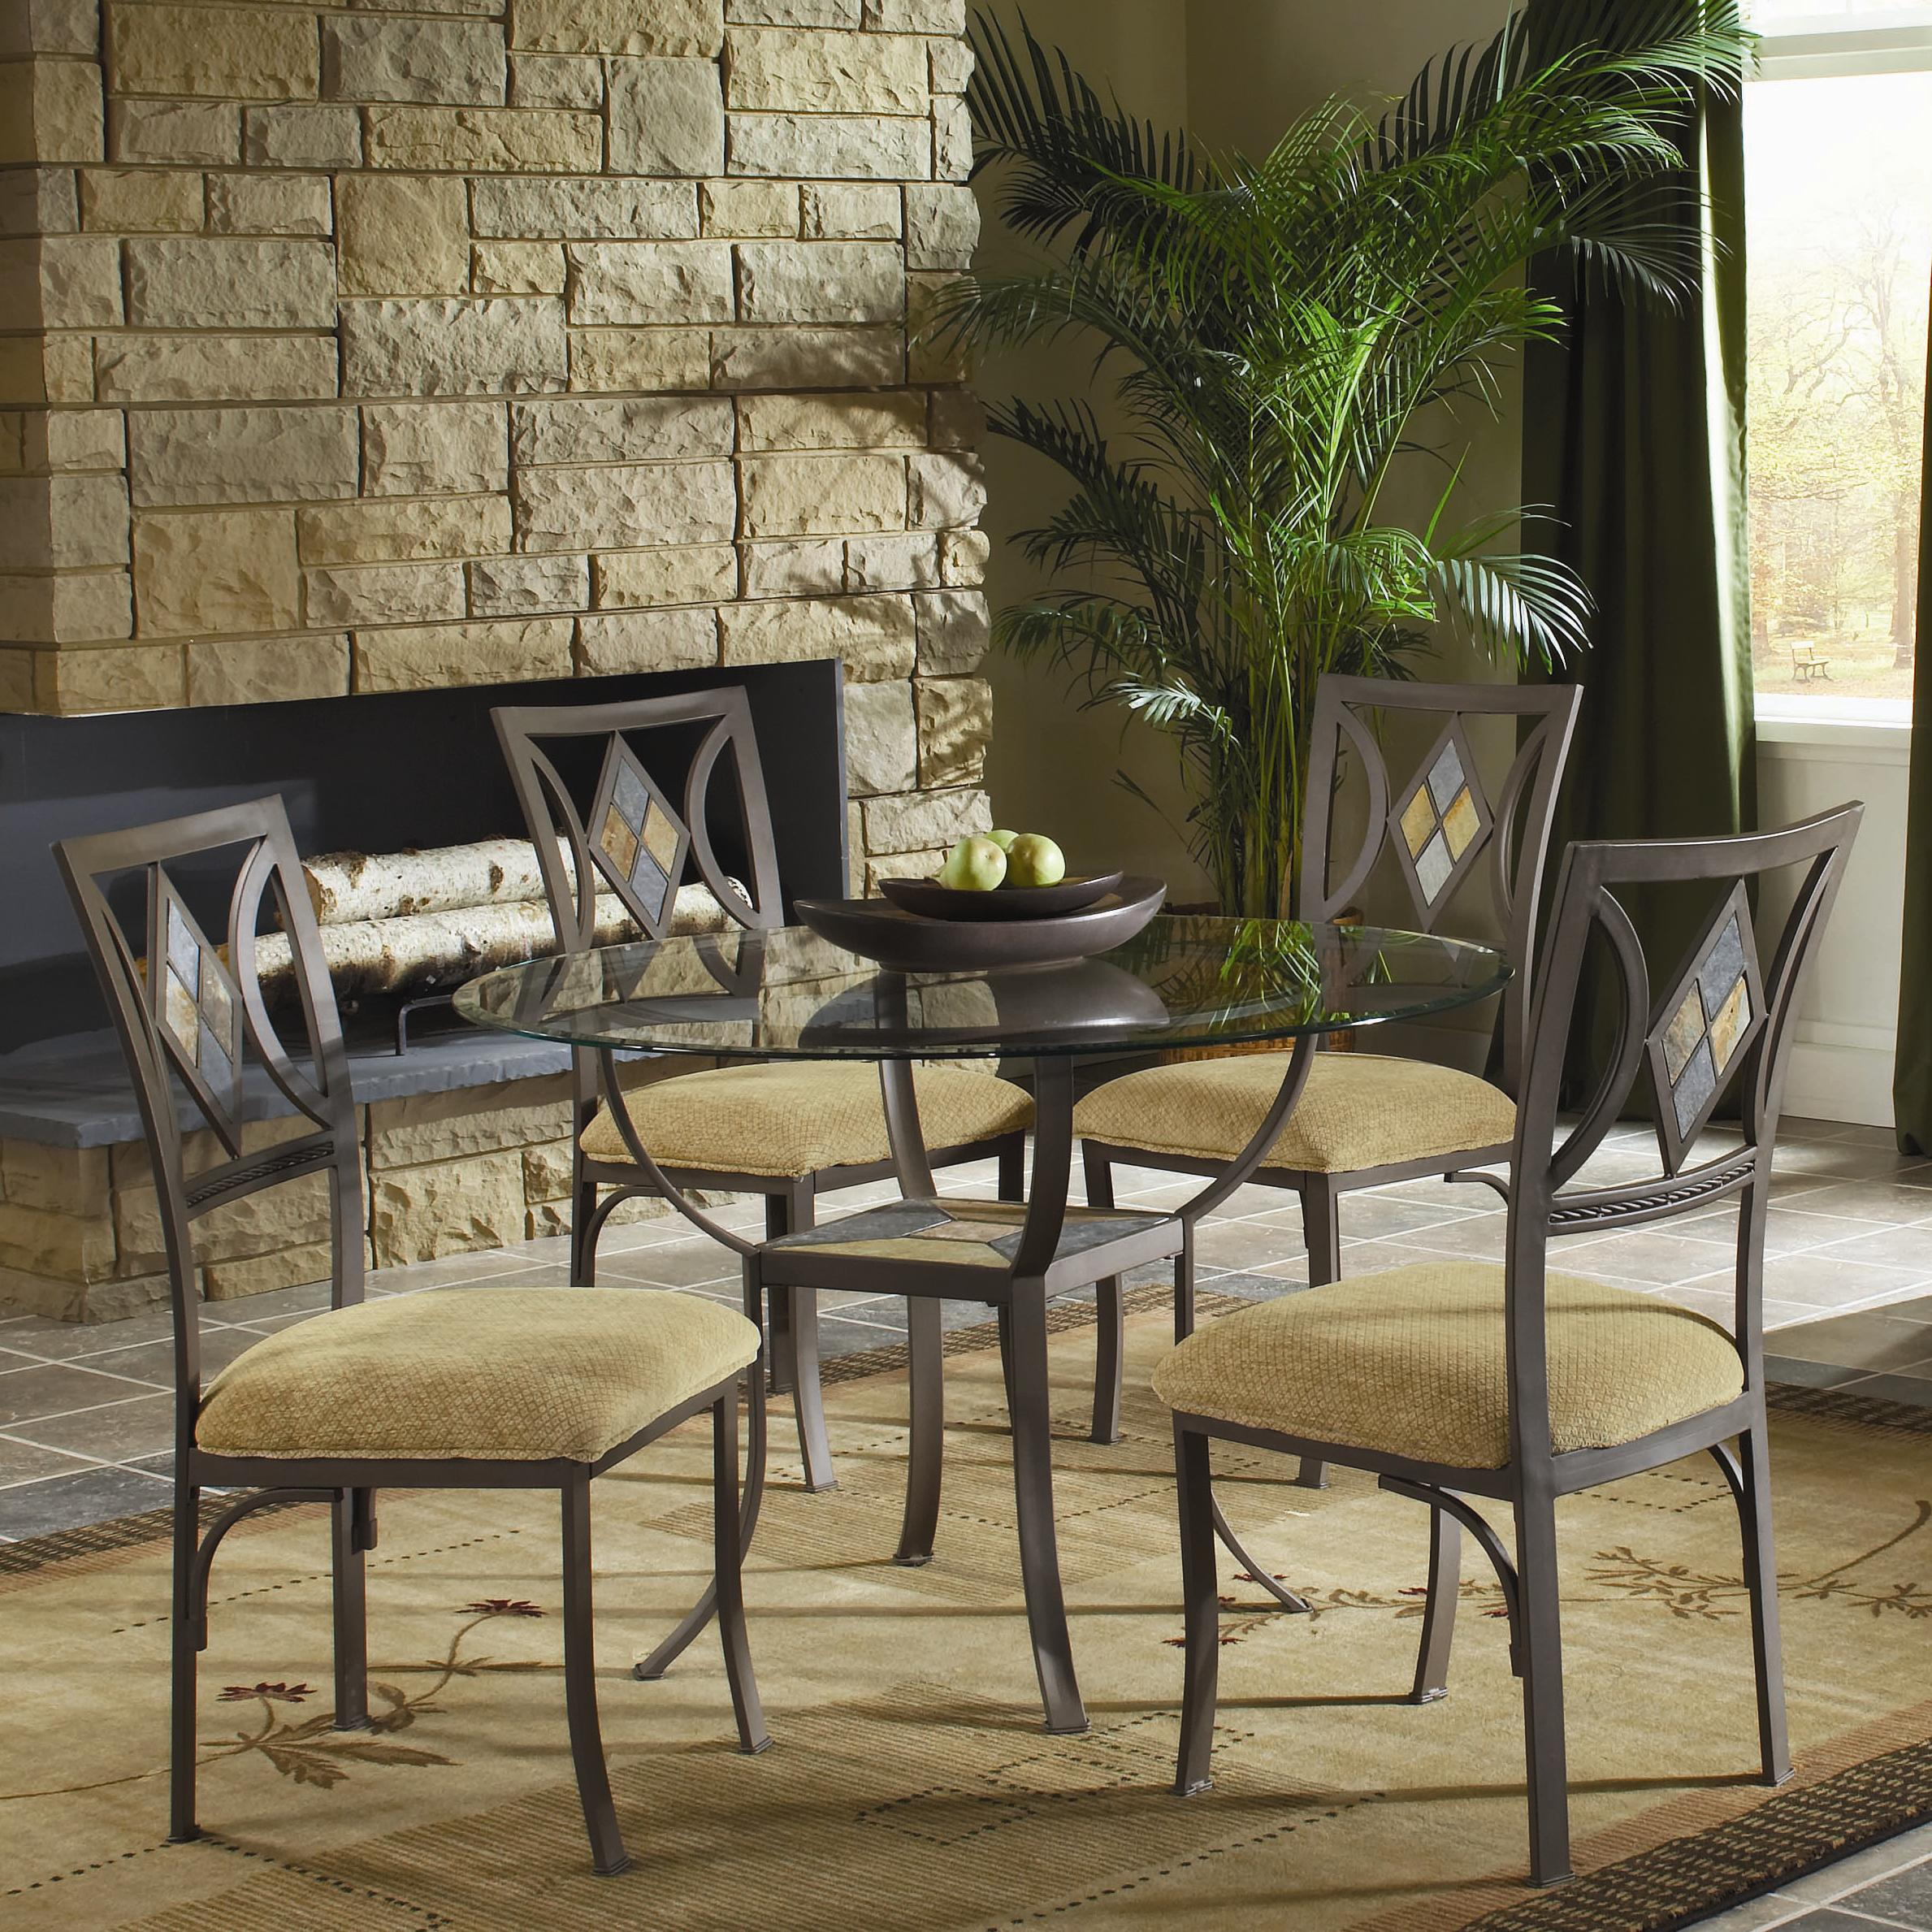 Bernards Diamond Tile 5 Piece Round Table Set - Item Number: 4624+4x4625